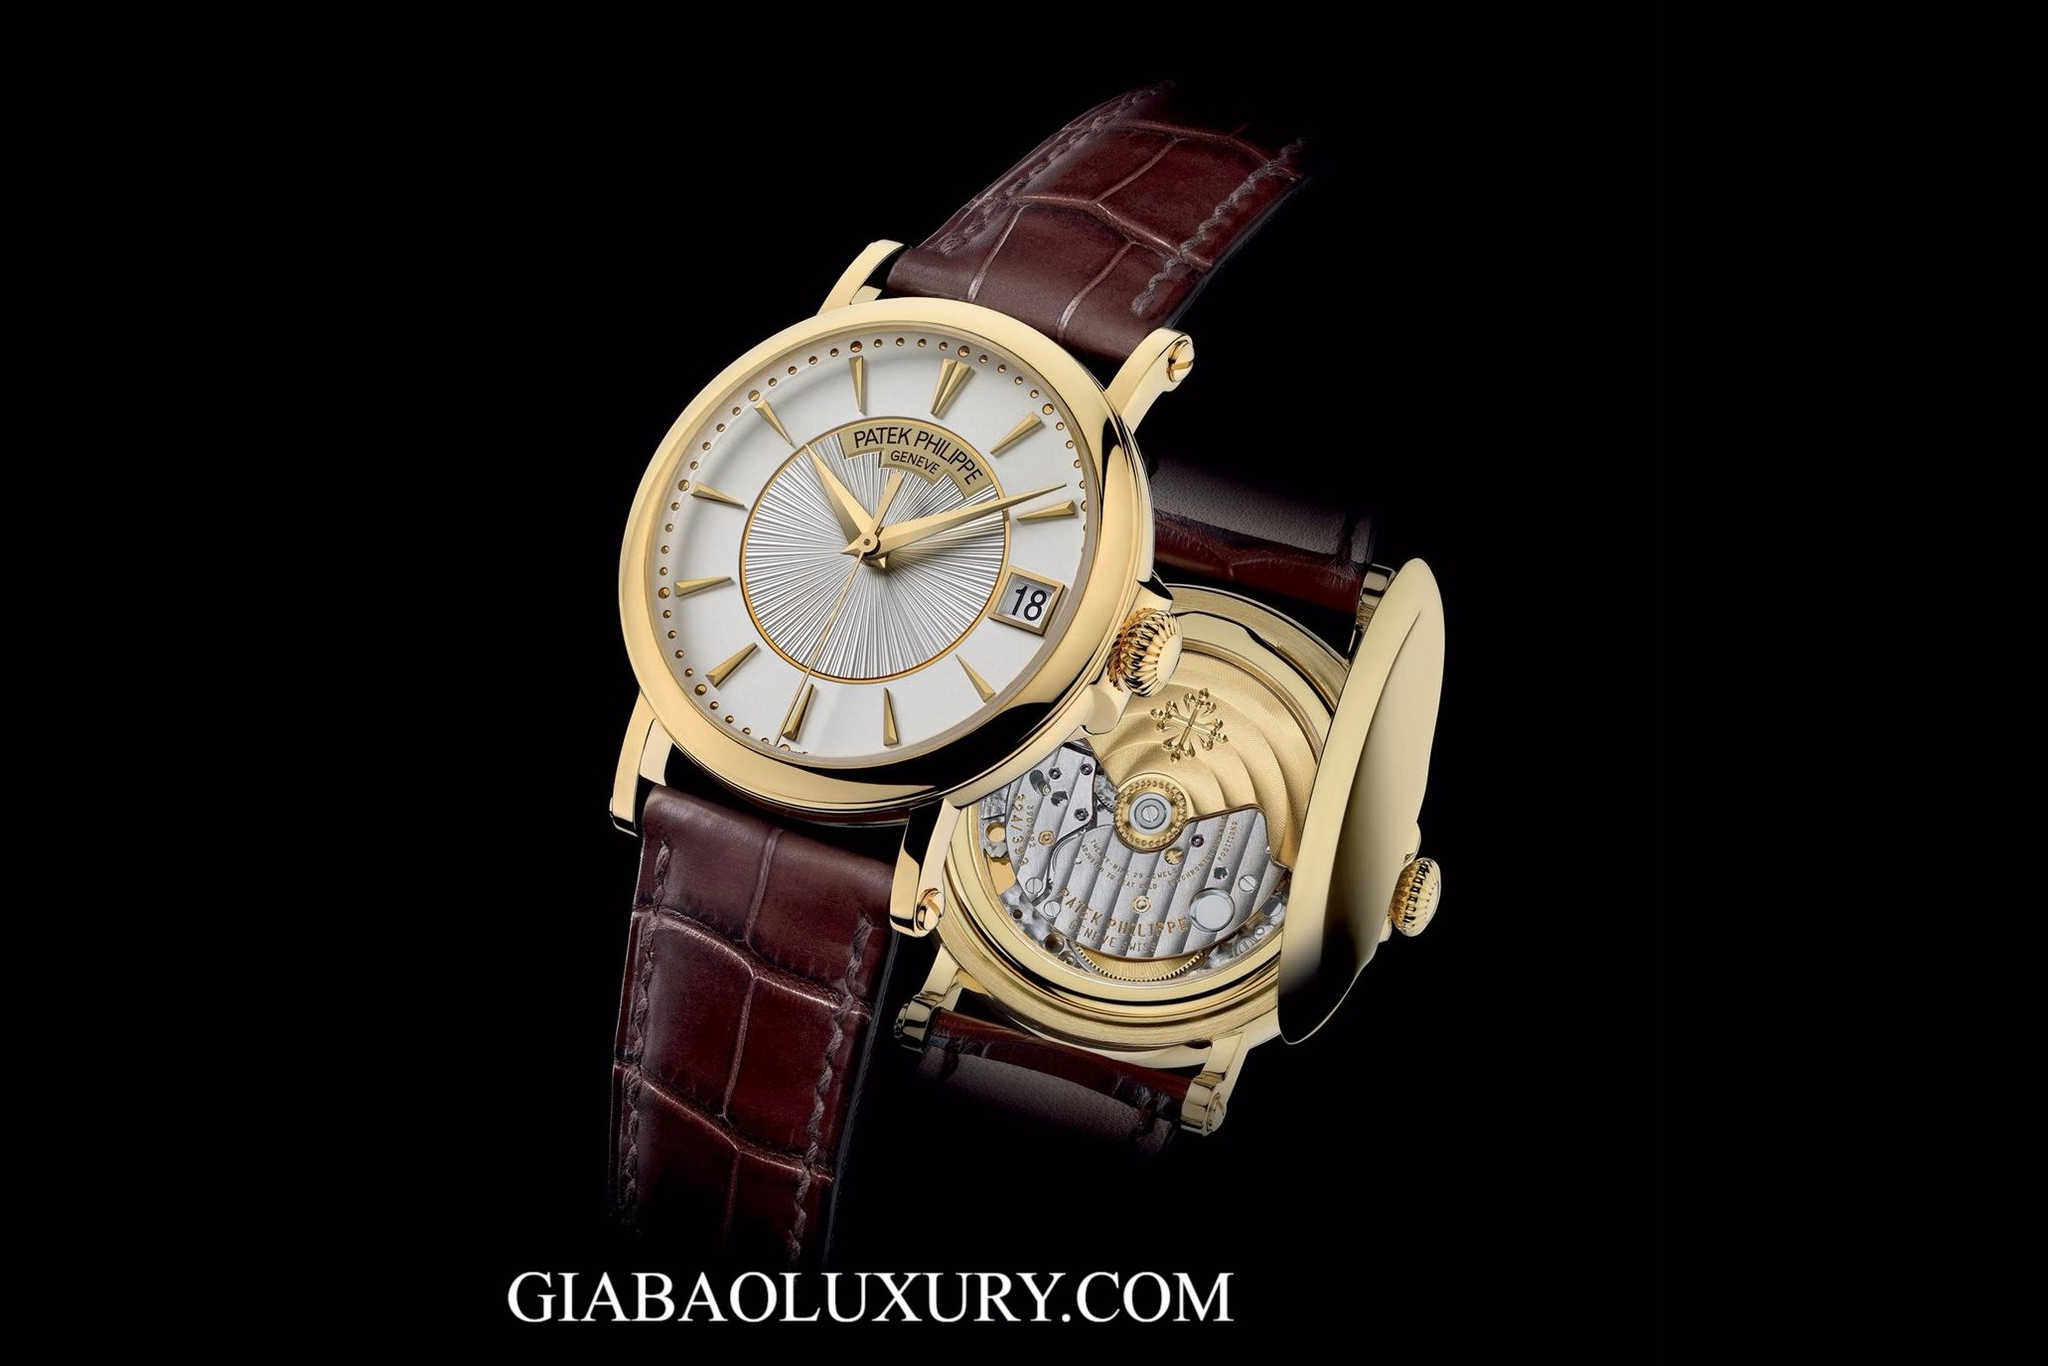 ĐỒNG HỒ PATEK PHILIPPE CALATRAVA - 5153J DATE, SWEEP SECONDS